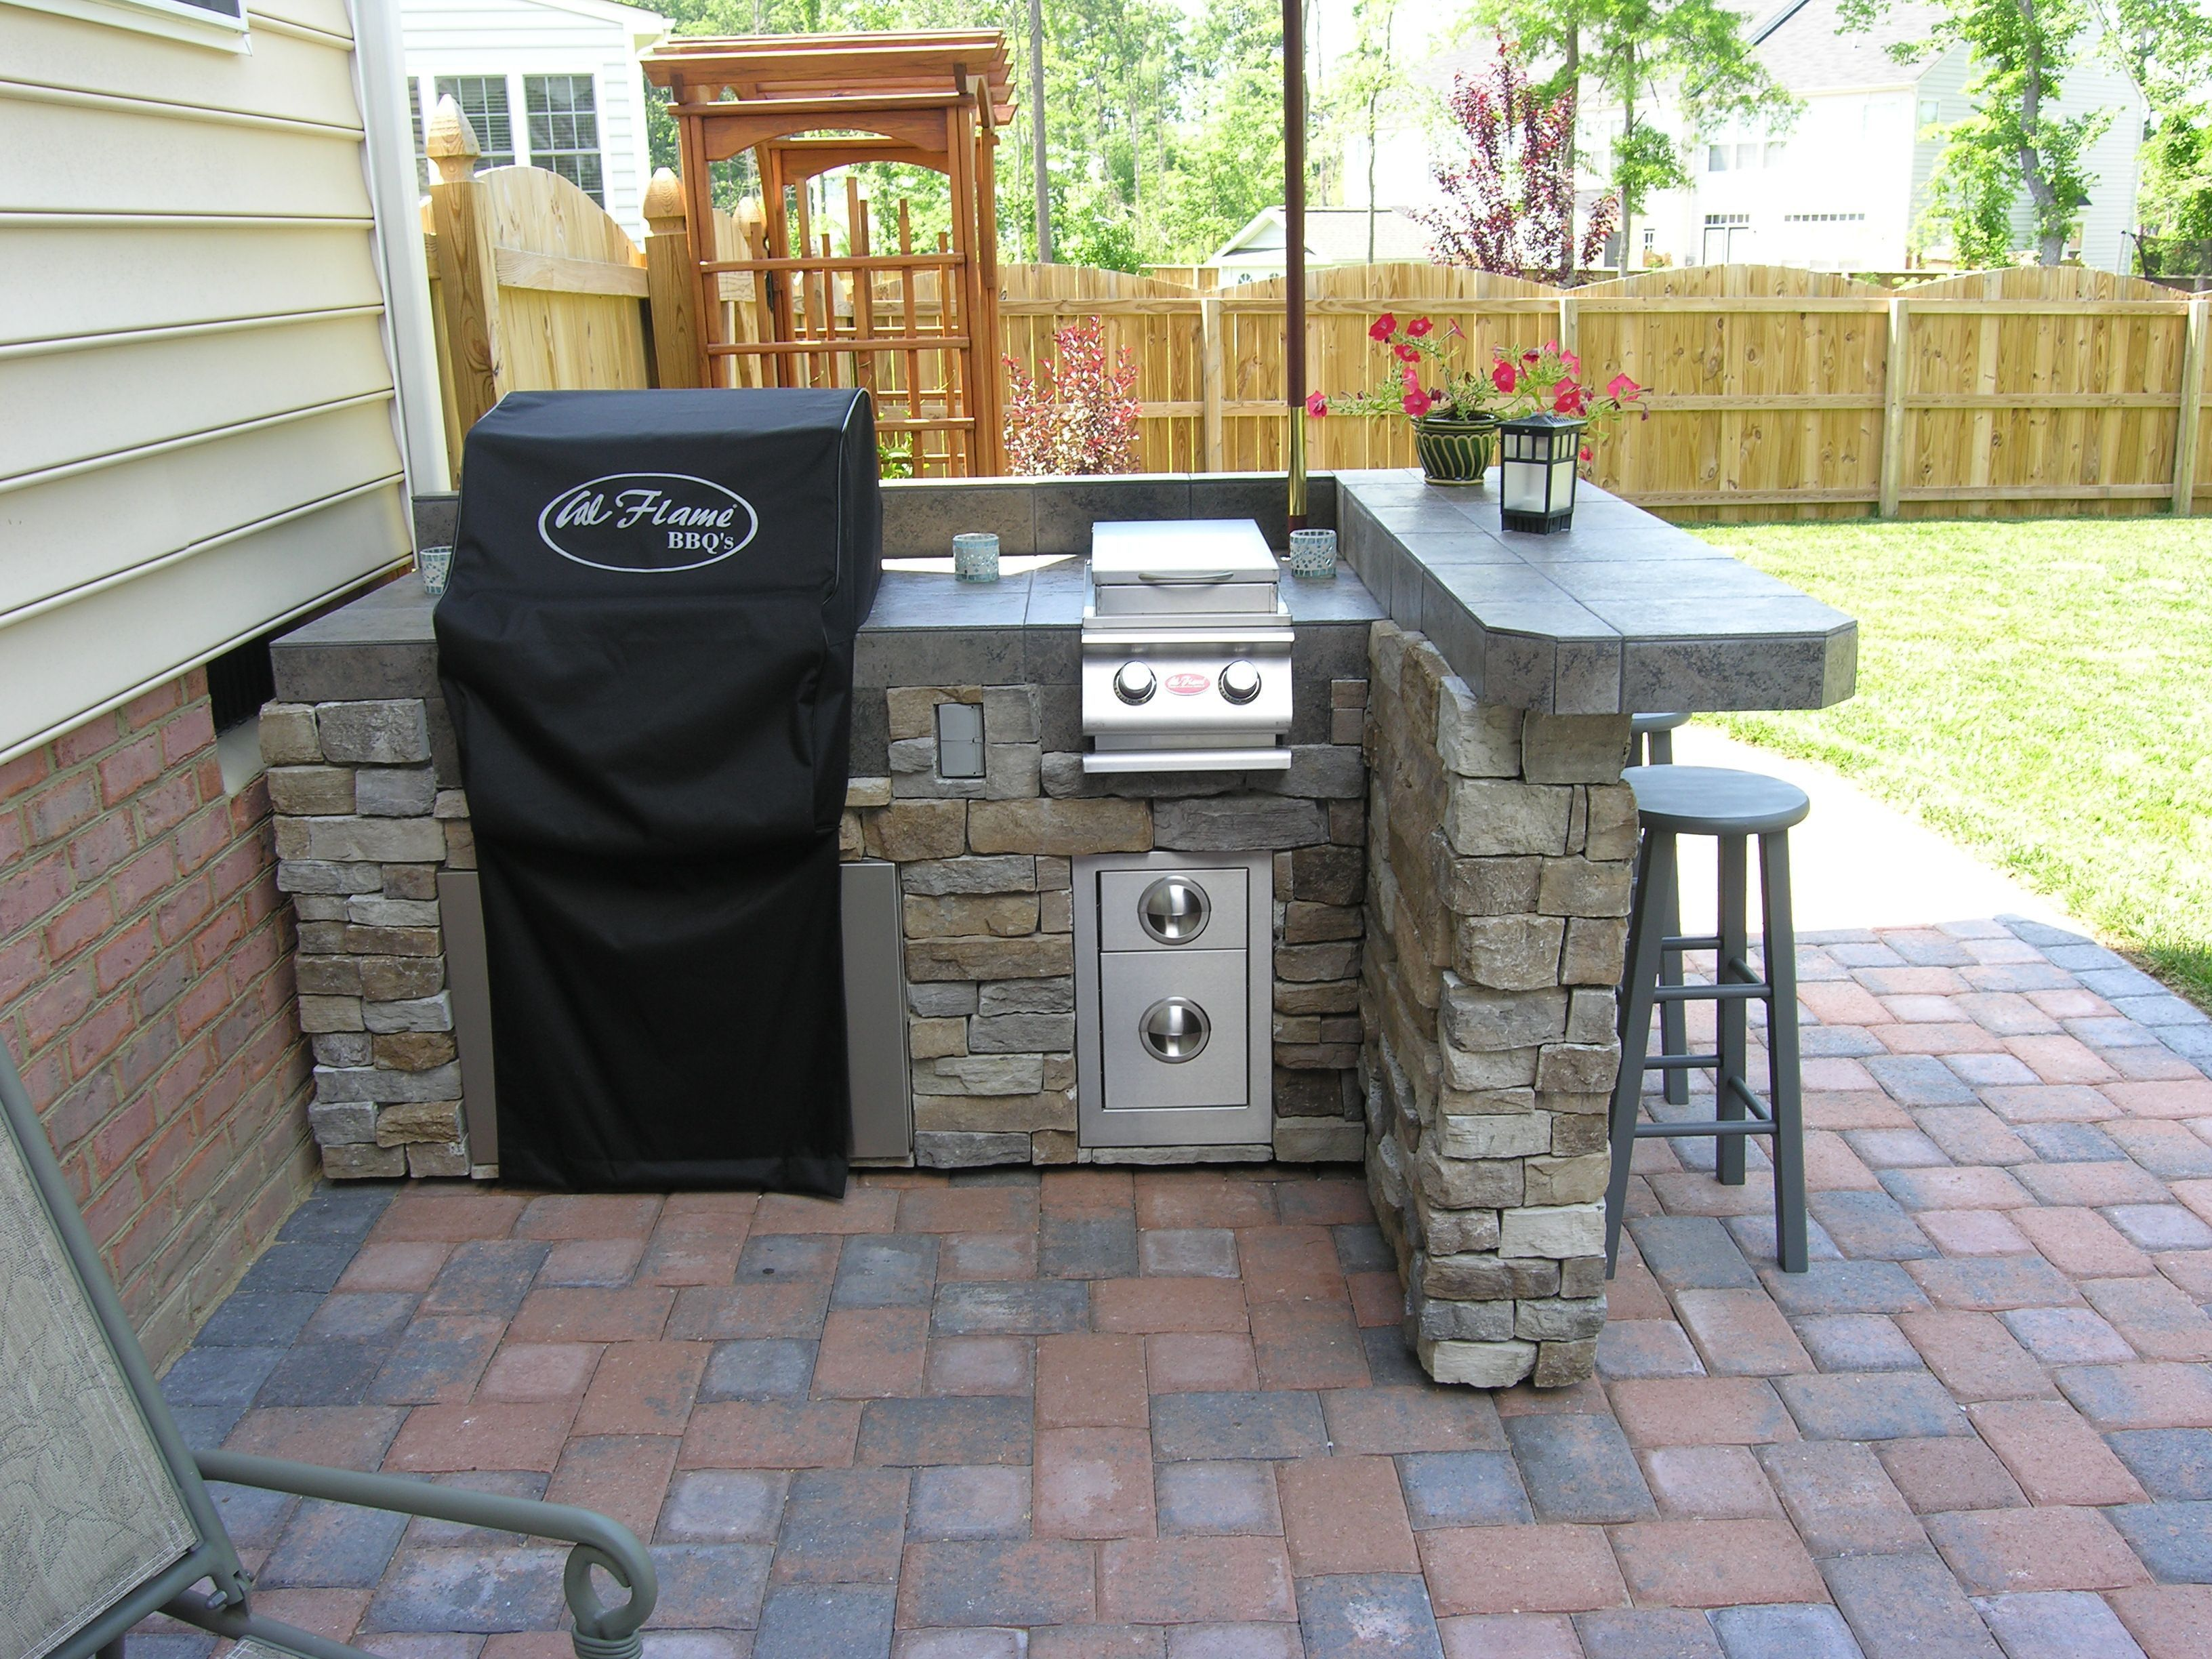 Pin By Remarkable Outdoor Home Kitche On Reno Ideas In 2020 Small Outdoor Kitchens Outdoor Kitchen Plans Outdoor Kitchen Decor